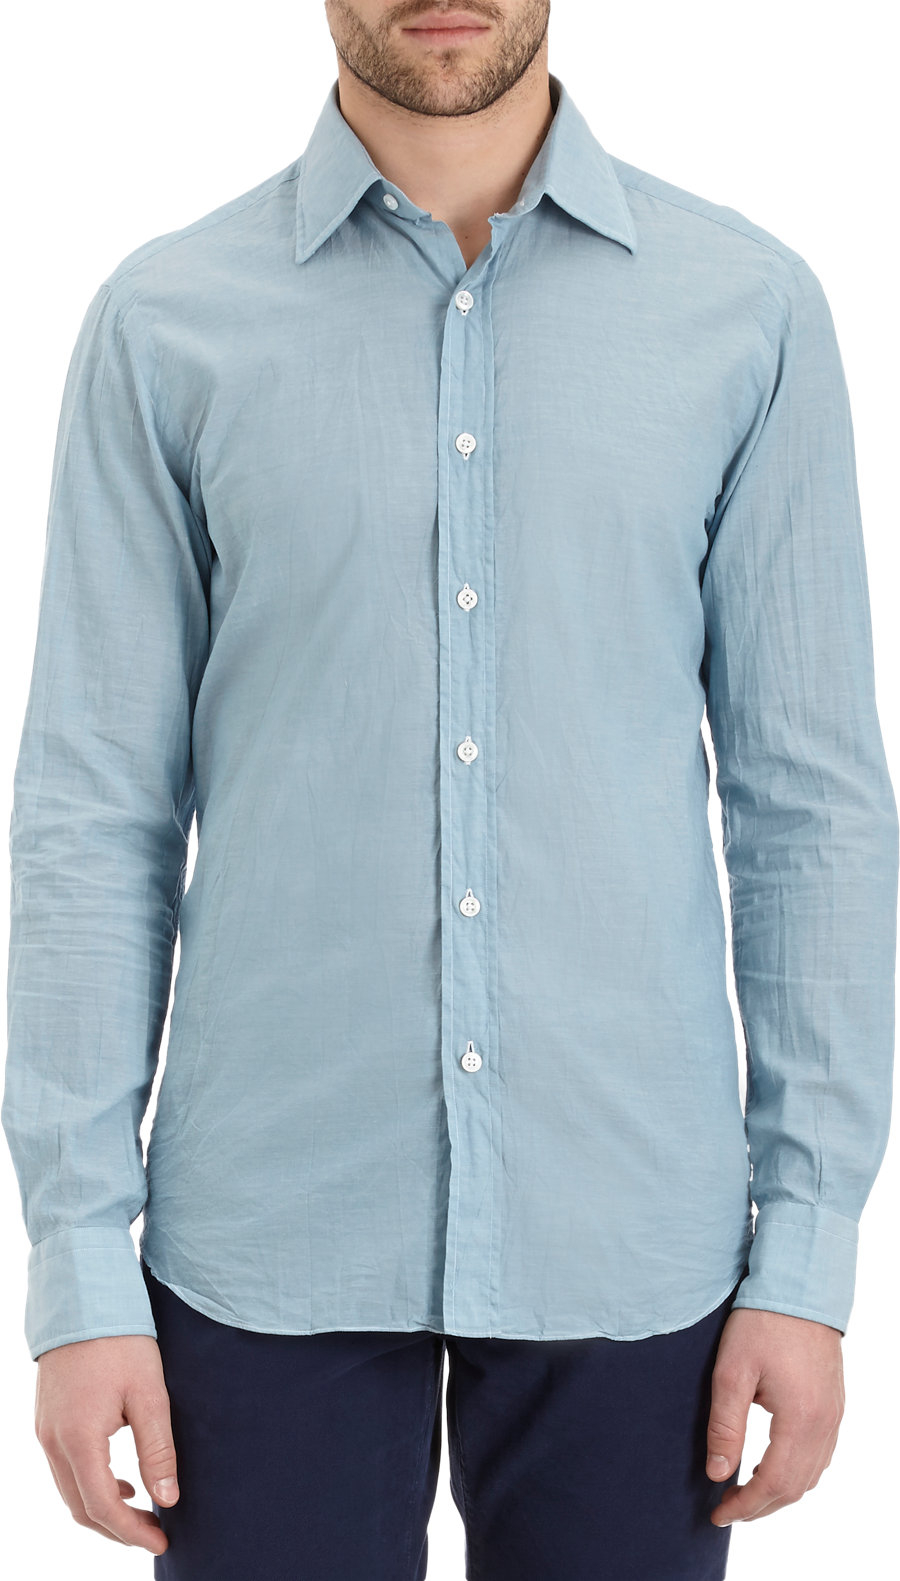 Find great deals on eBay for blue chambray shirt. Shop with confidence.